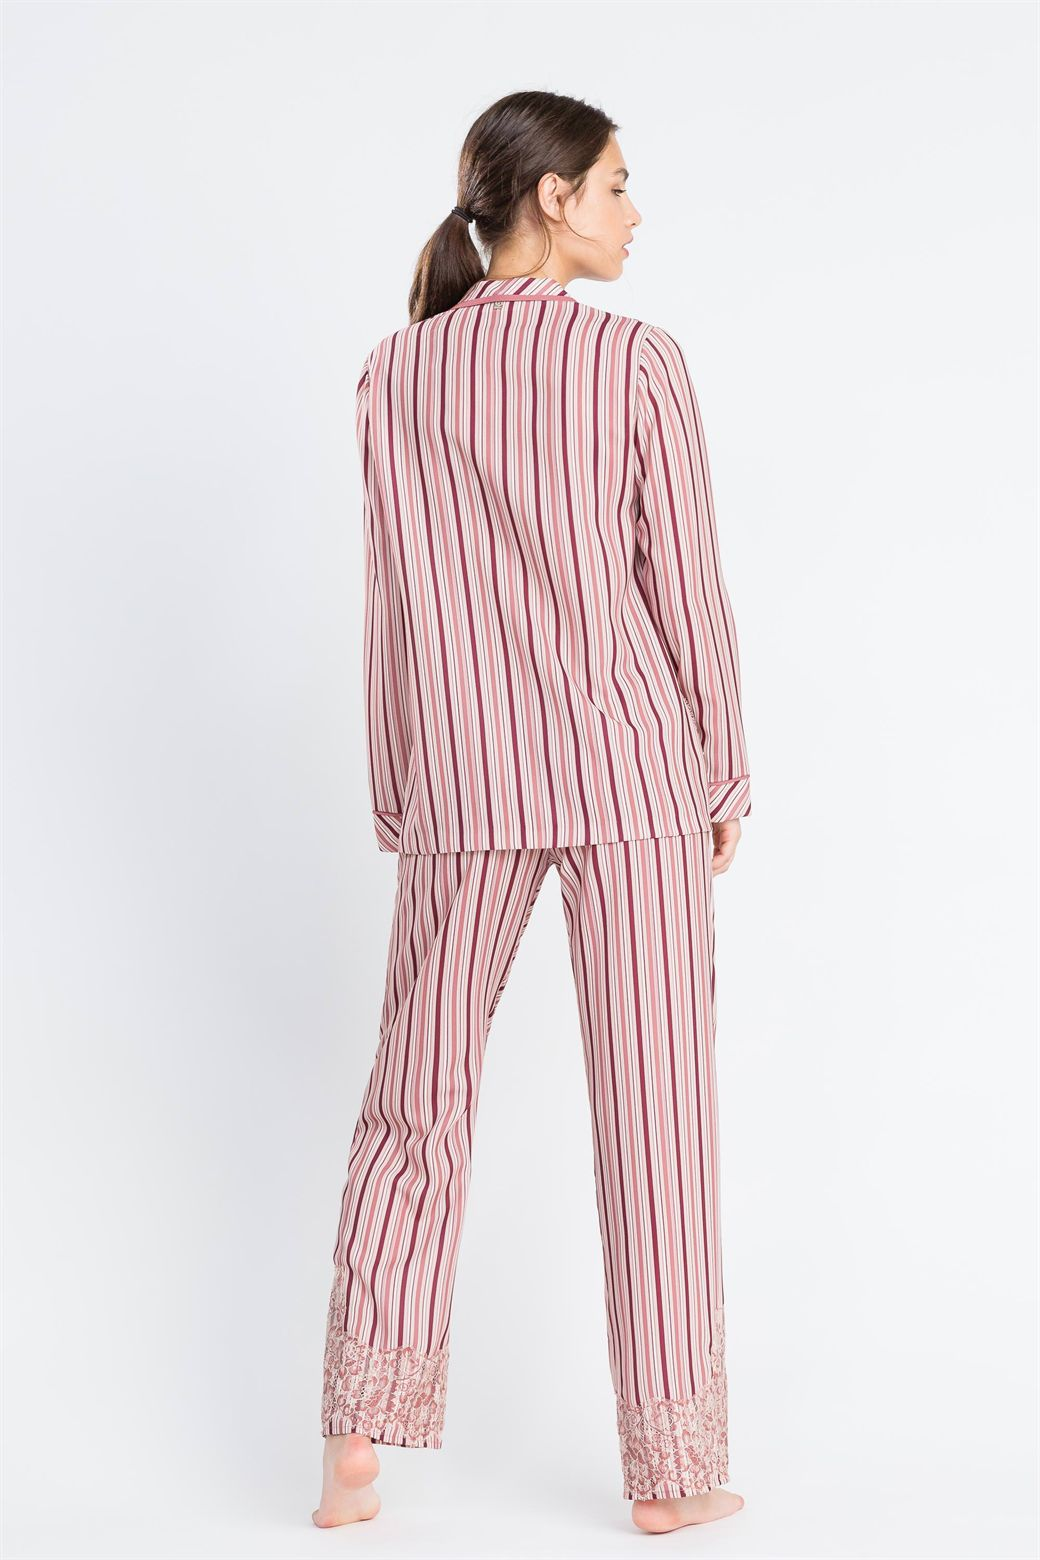 Striped pyjamas  Twin Set  IA8DNN